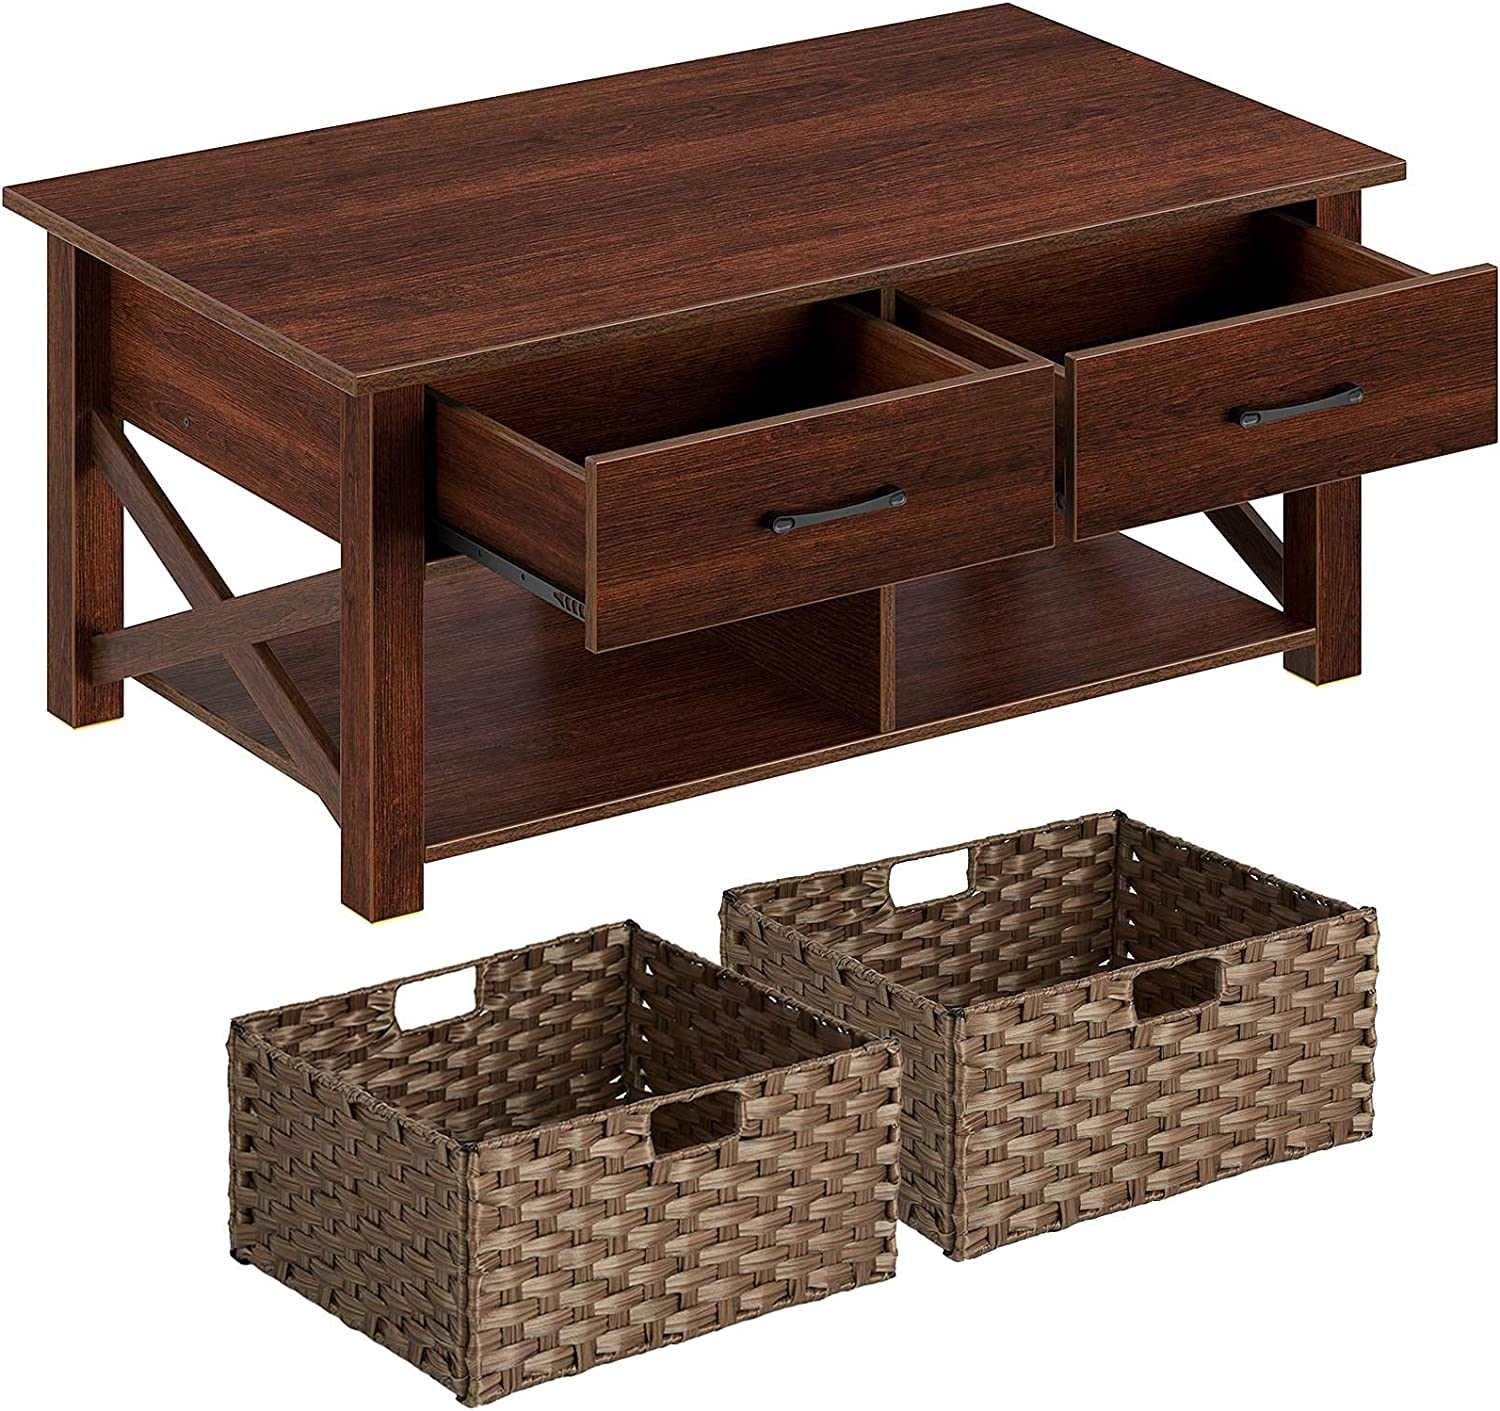 Ranking TOP1 Rolanstar Coffee Table with 2 Storage Max 70% OFF Baske and Rattan Drawers